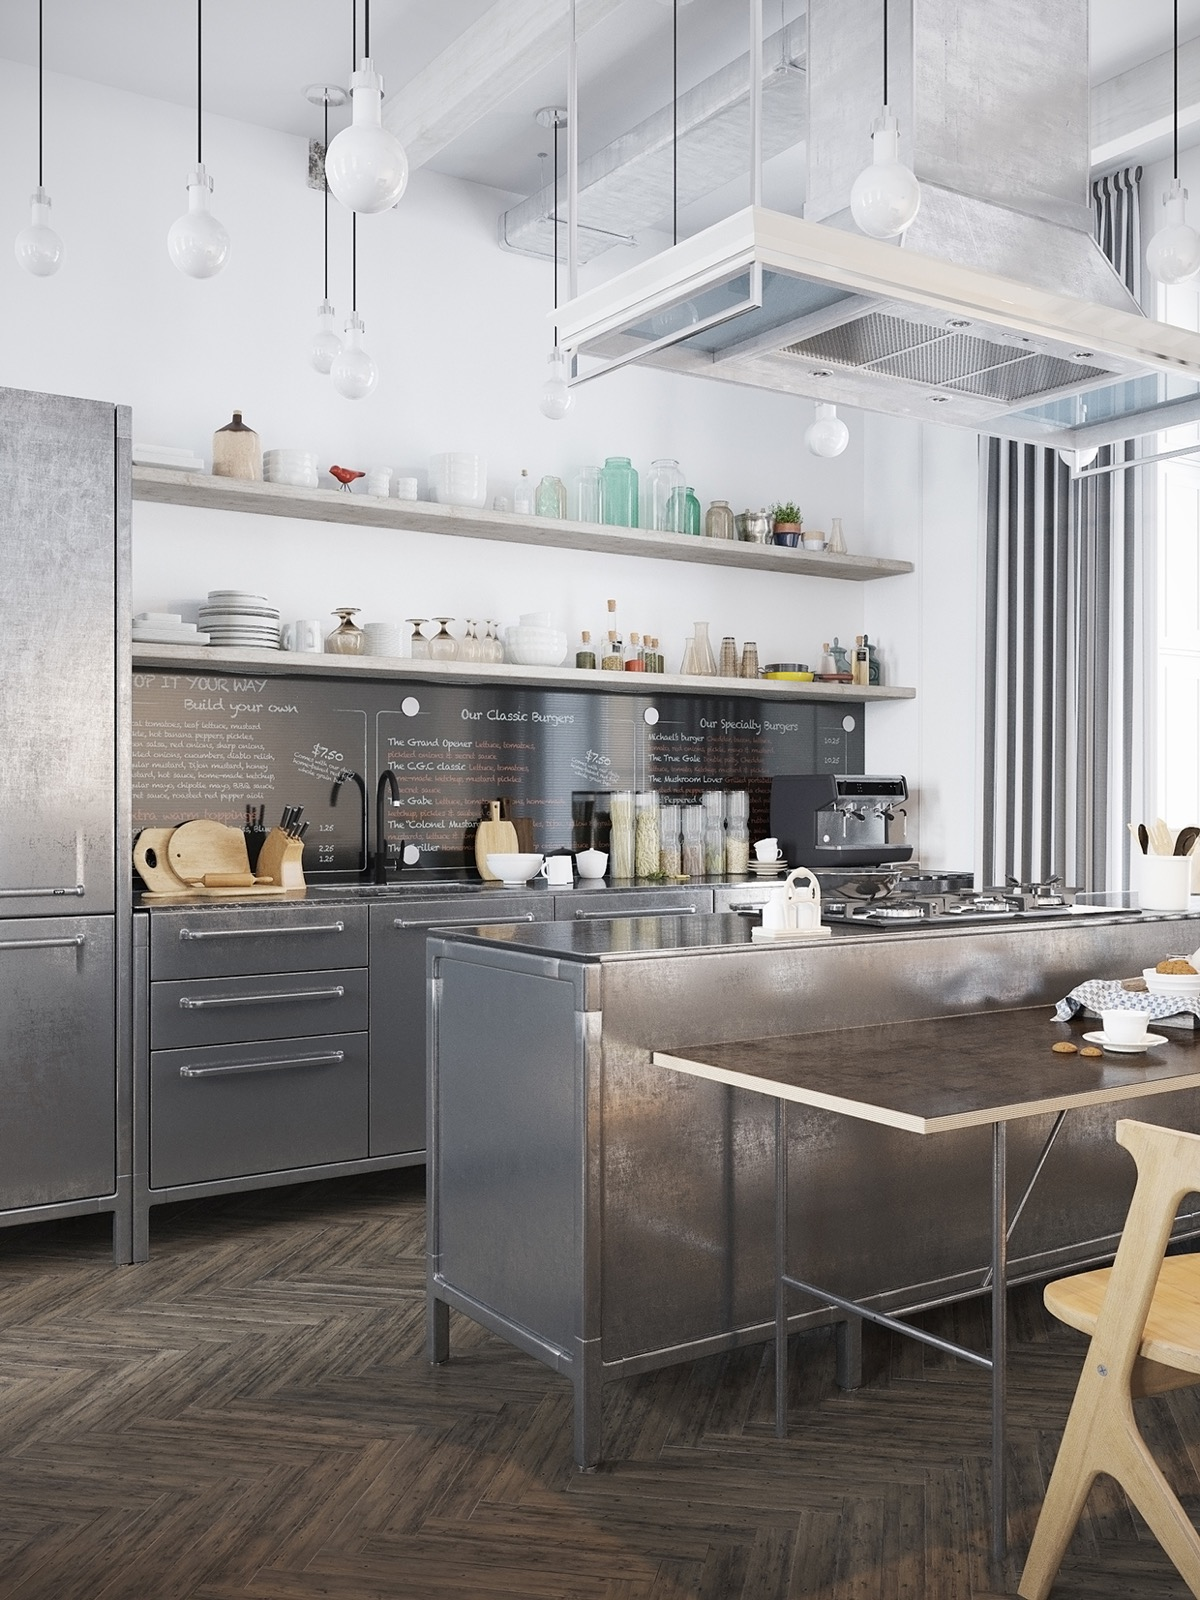 industrial-kitchen-chrome-cabinetry-white-walls